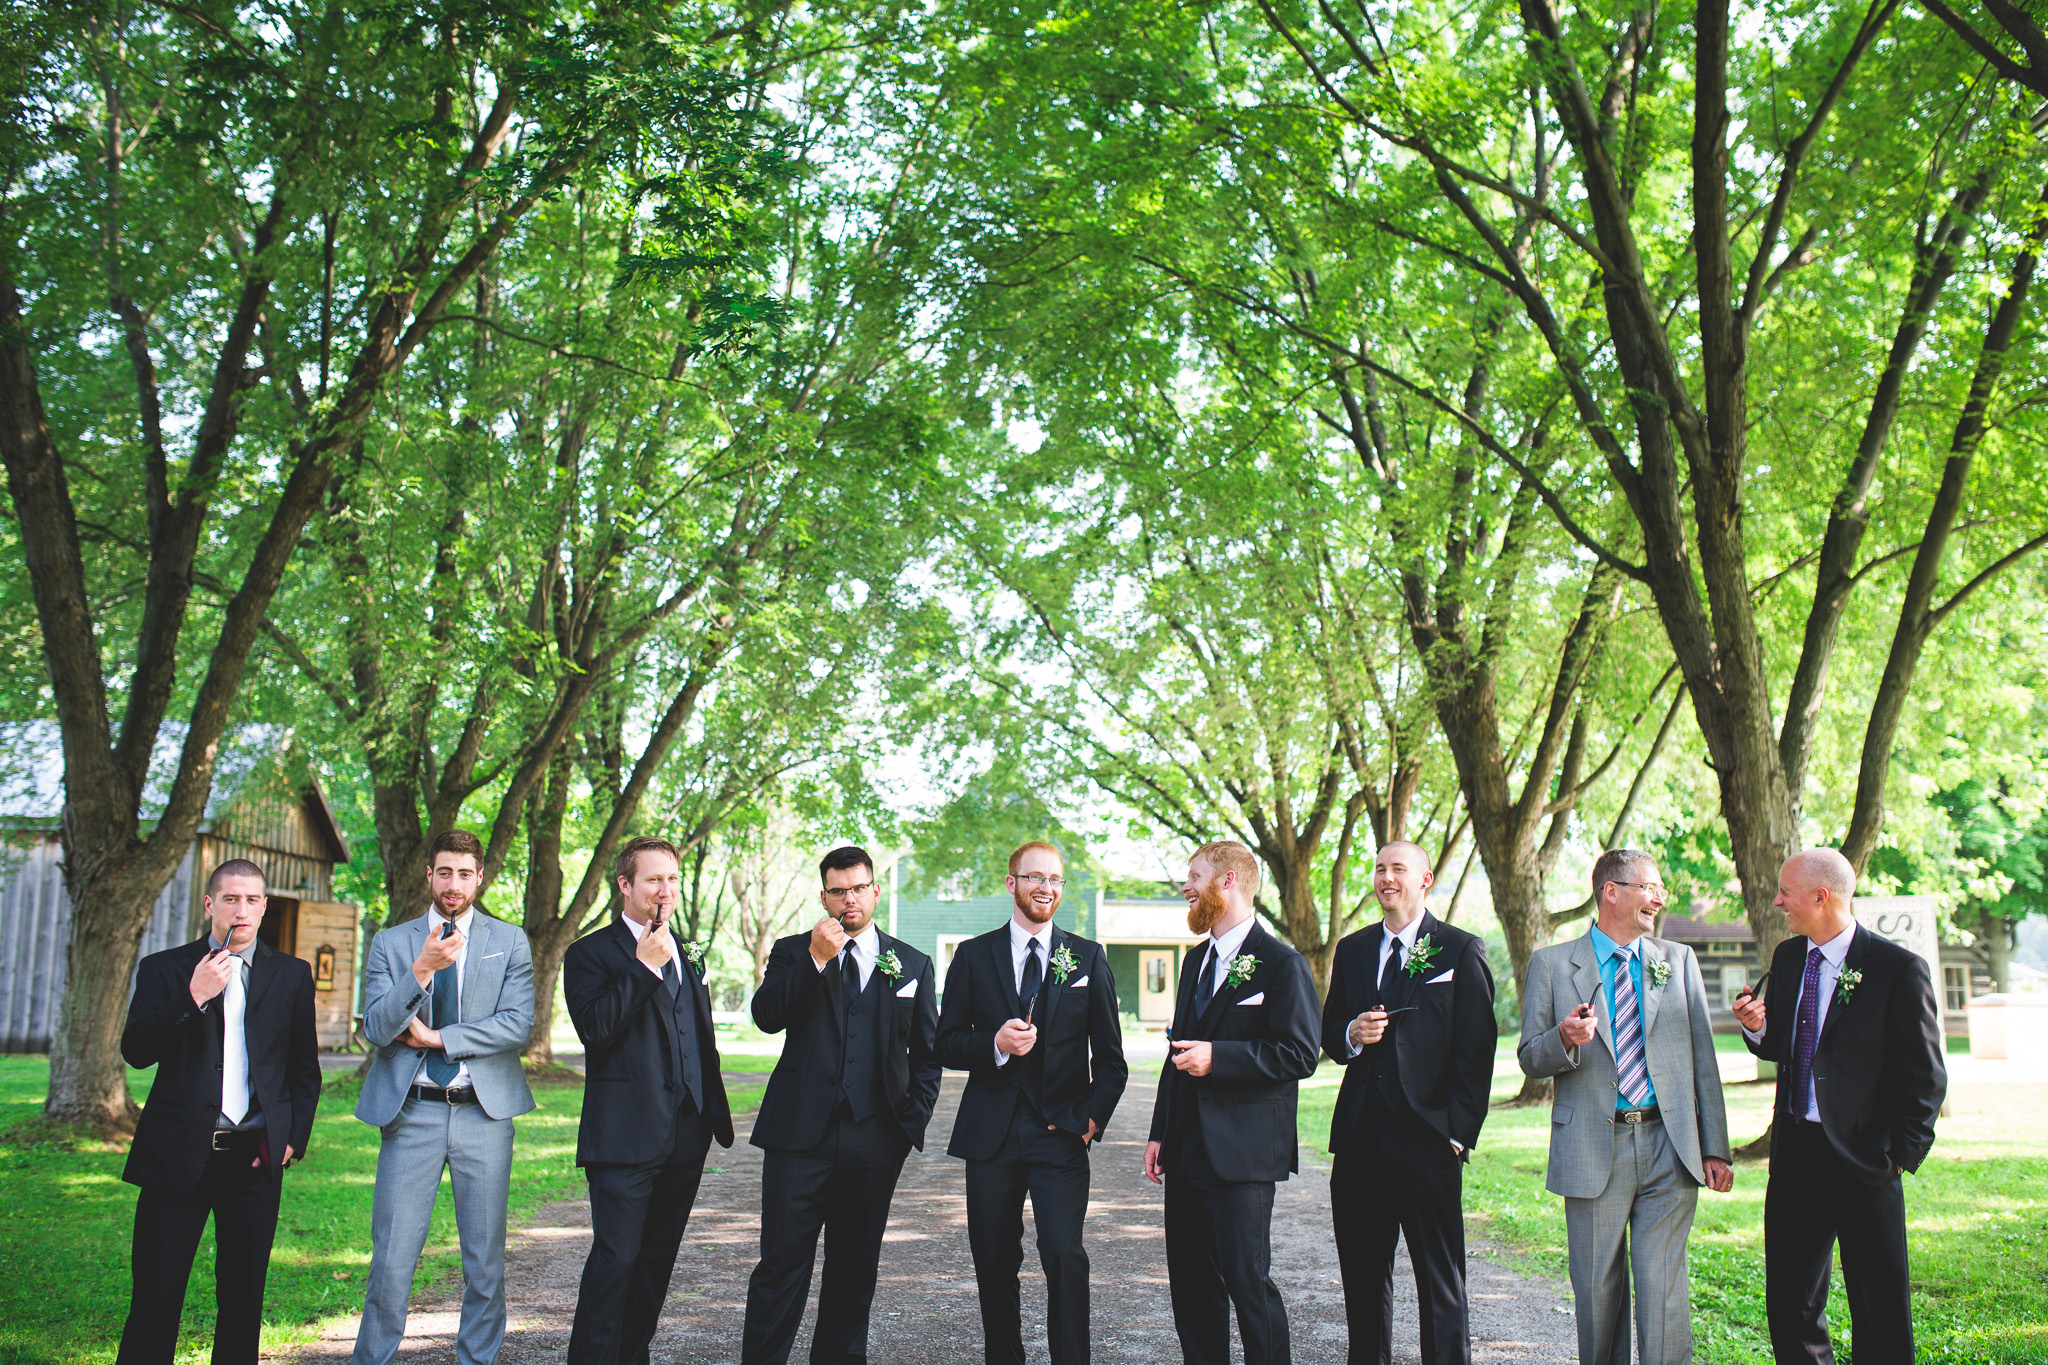 Groomsmen-smoking-pipes